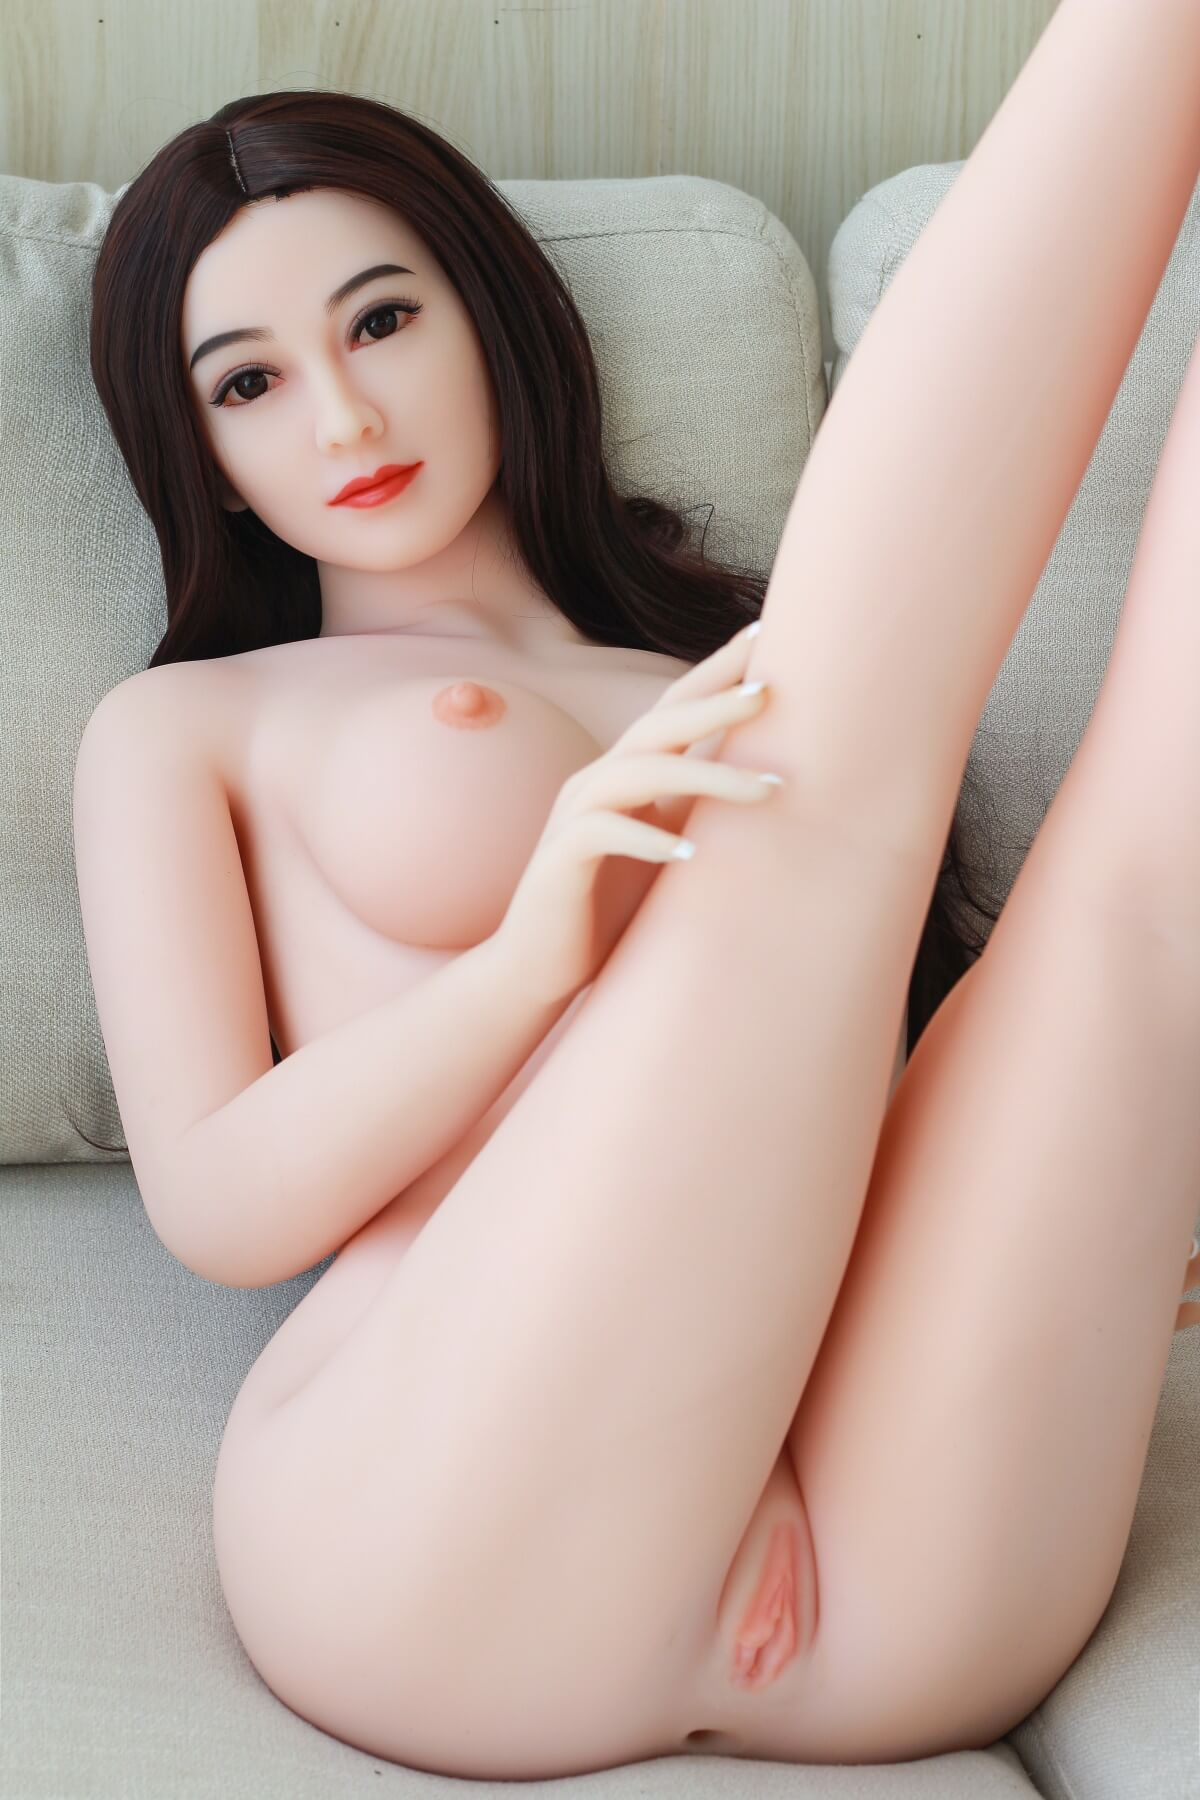 Japanese sex doll video